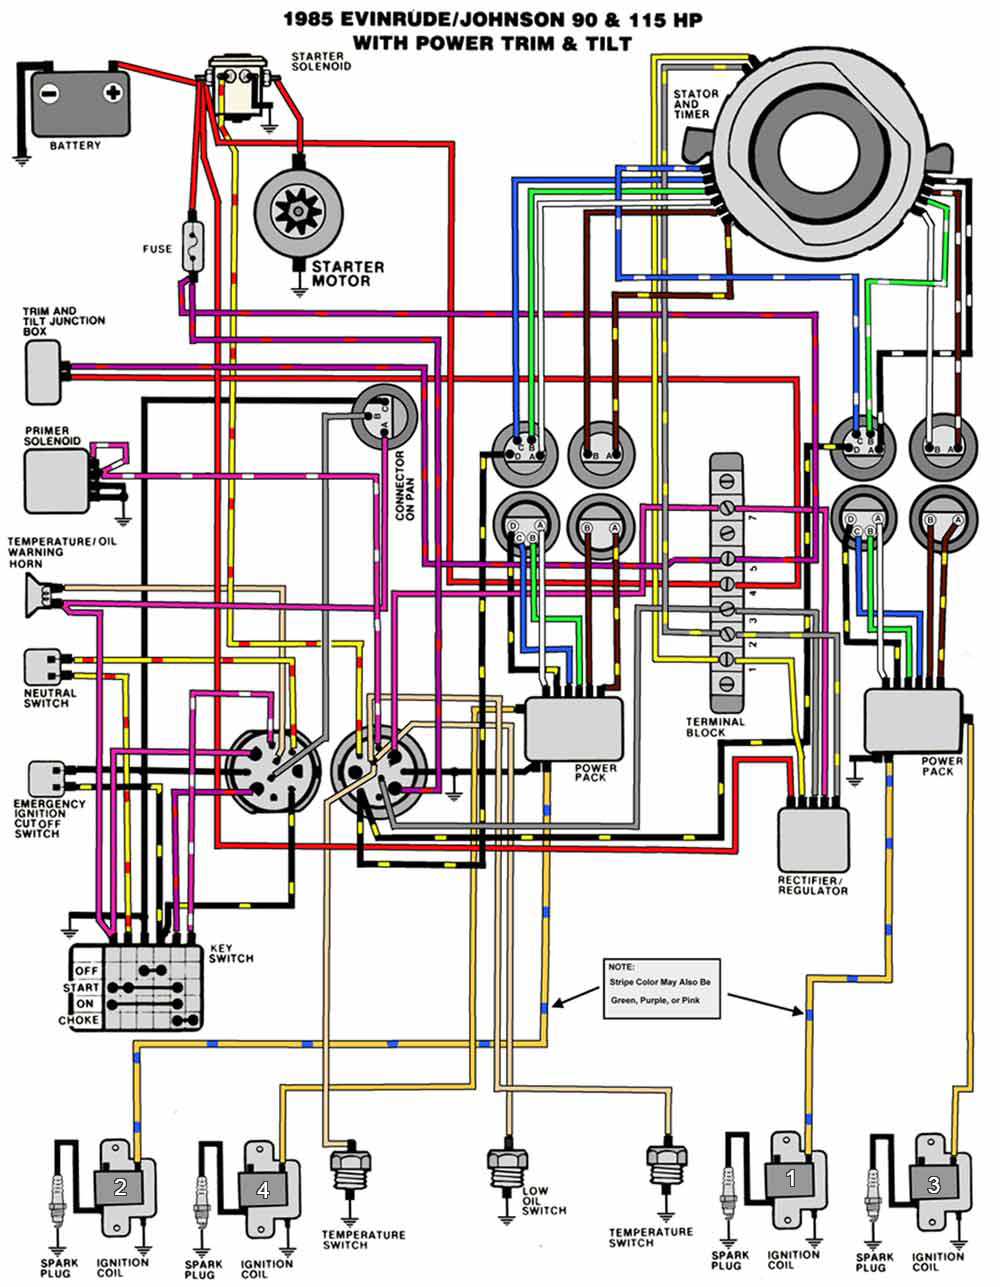 Wiring Schematics For Evinrude 115 Hp - Wiring Diagrams Entry on